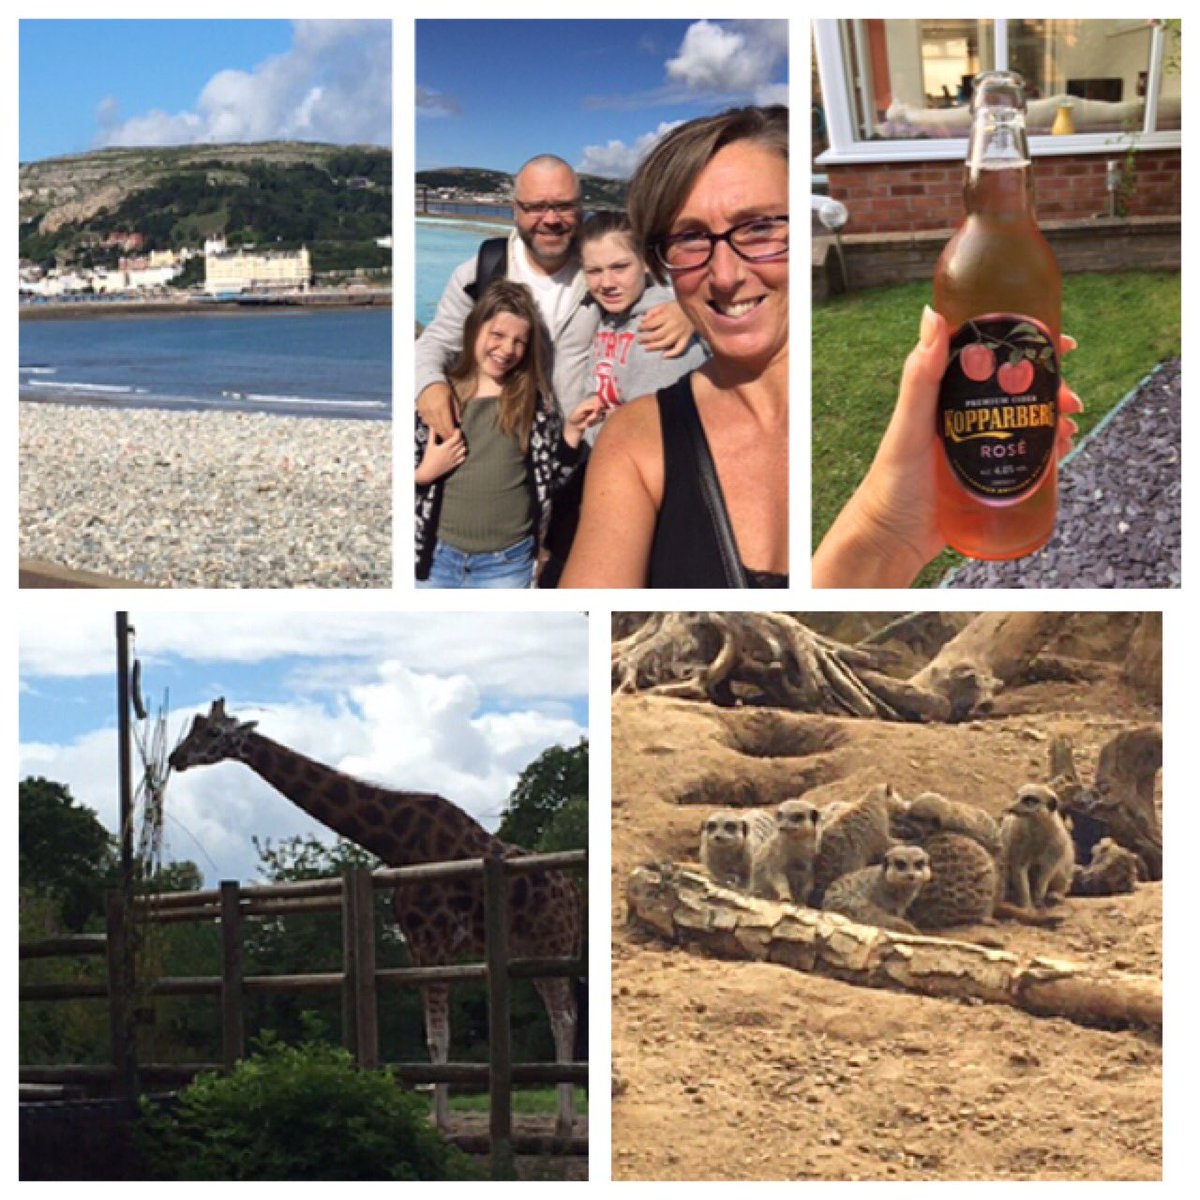 @GaryBarlow lovely time with my bubble #family #happytimes @chesterzoo #llandudno #cheekybeer https://t.co/4qF4zP9RPz